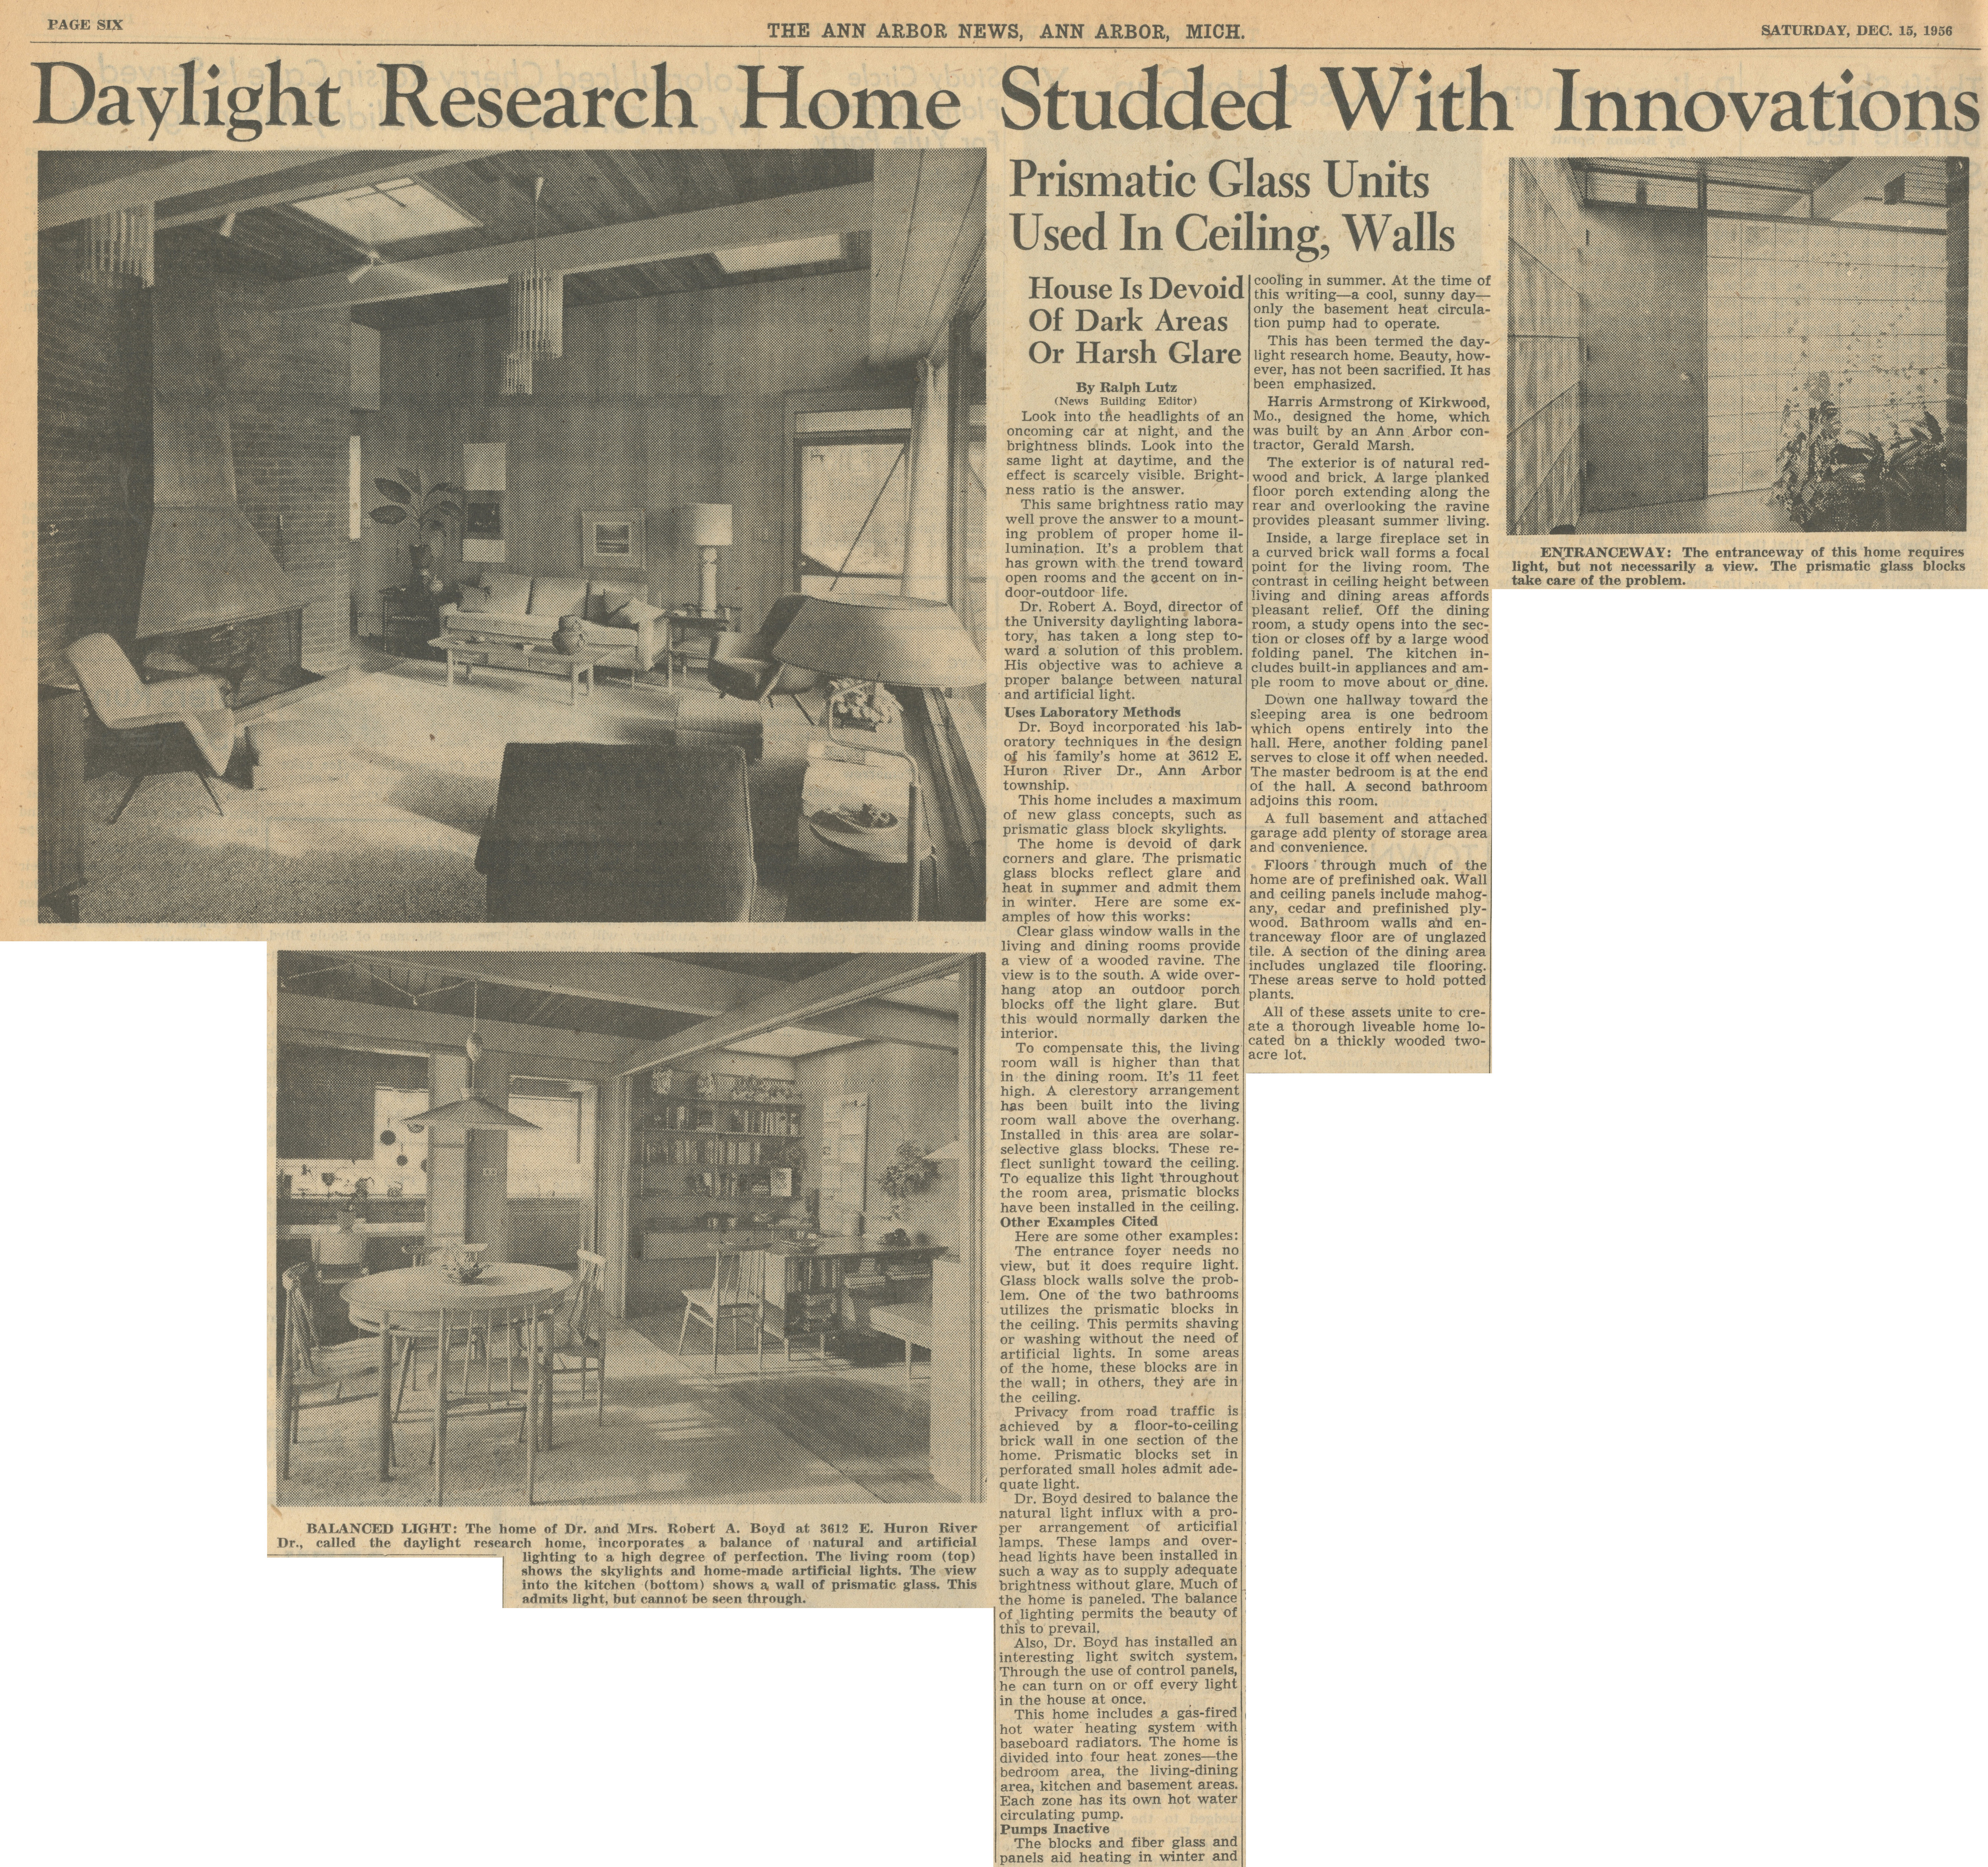 Daylight Research Home Studded With Innovations image